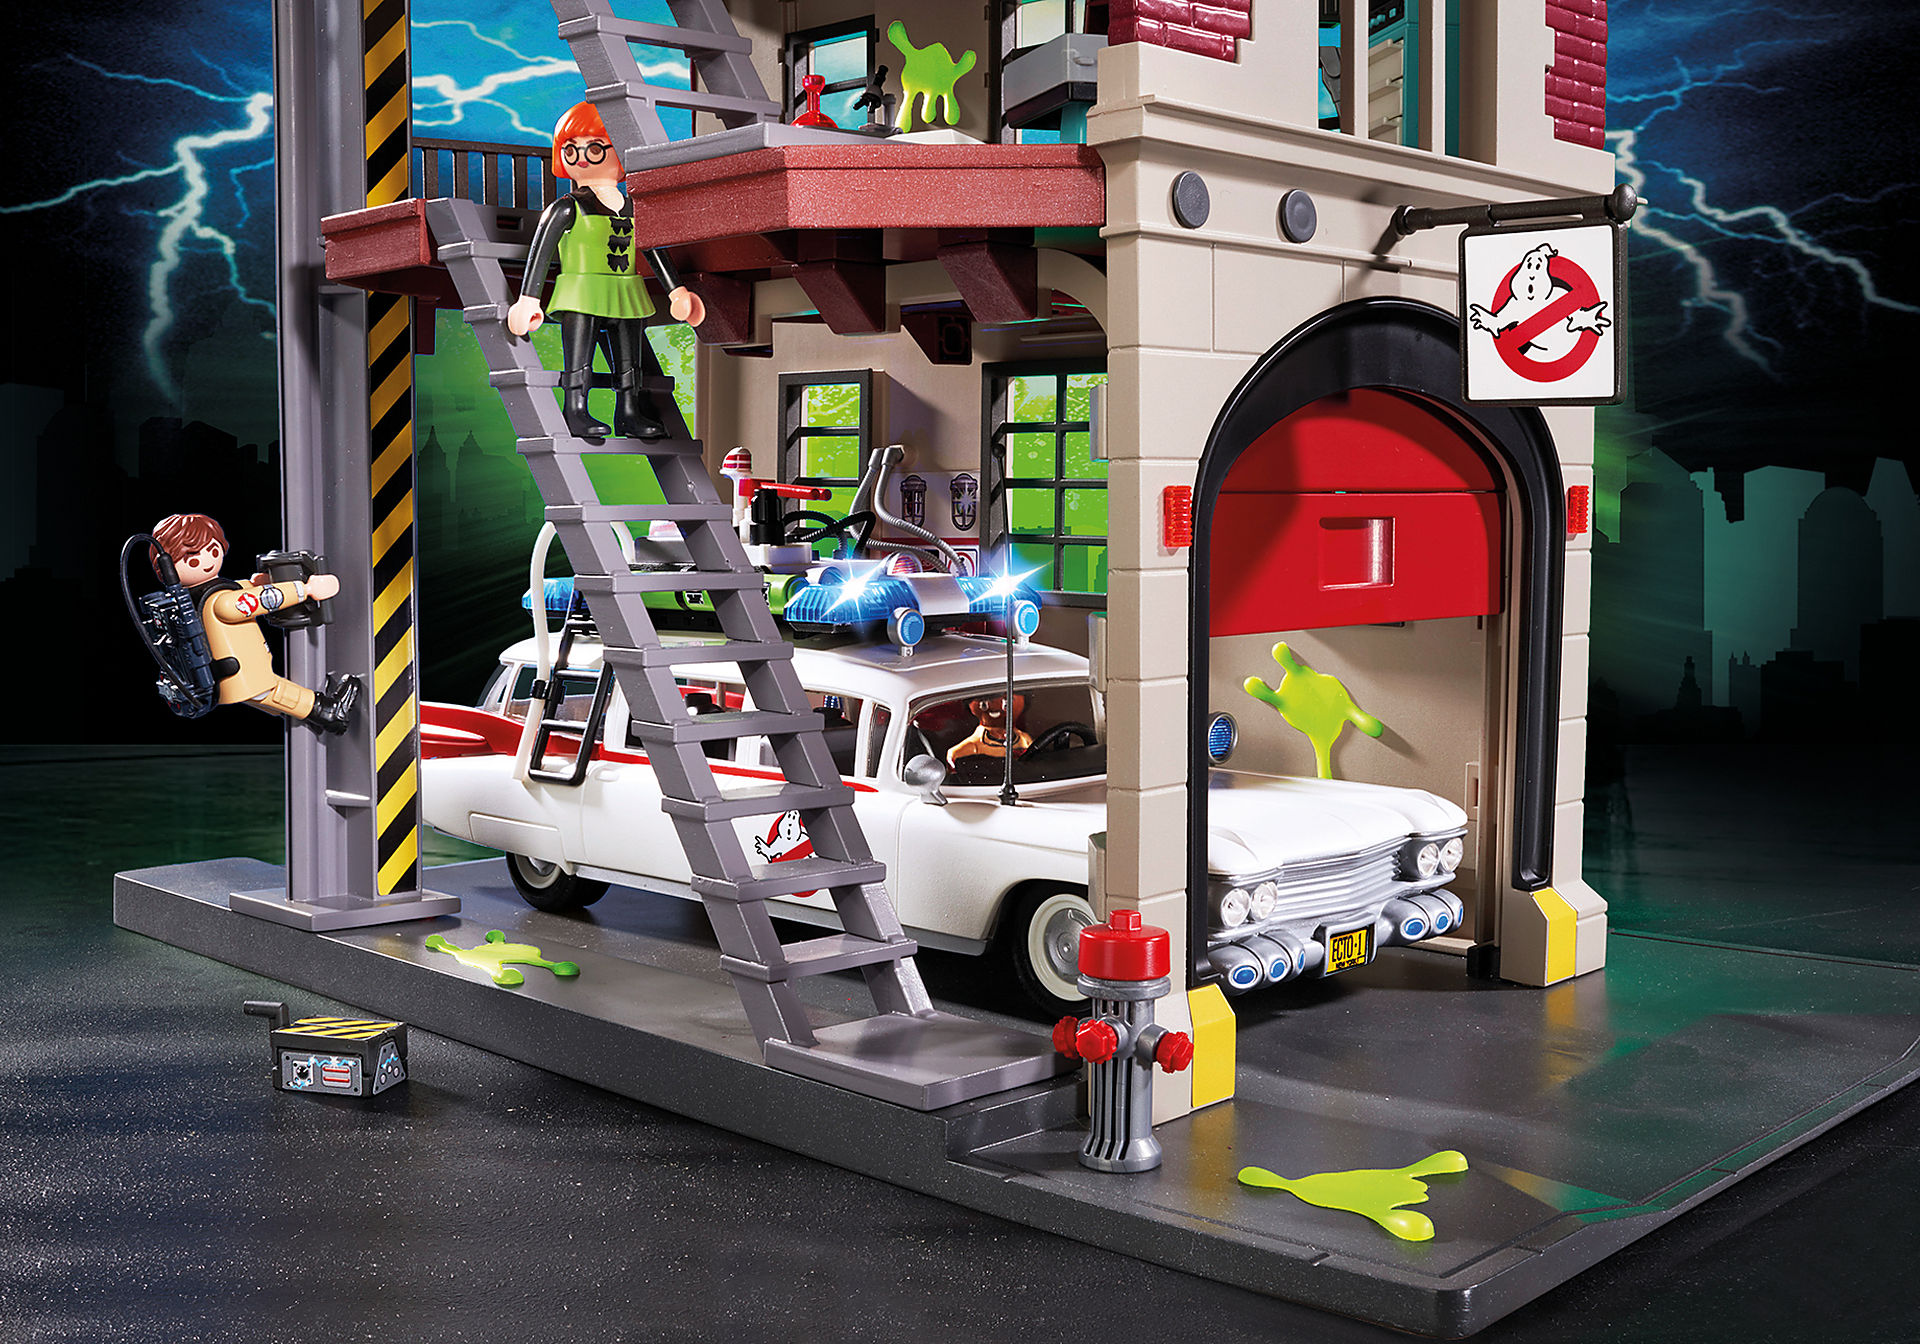 http://media.playmobil.com/i/playmobil/9220_product_extra1/Ghostbusters Ecto-1